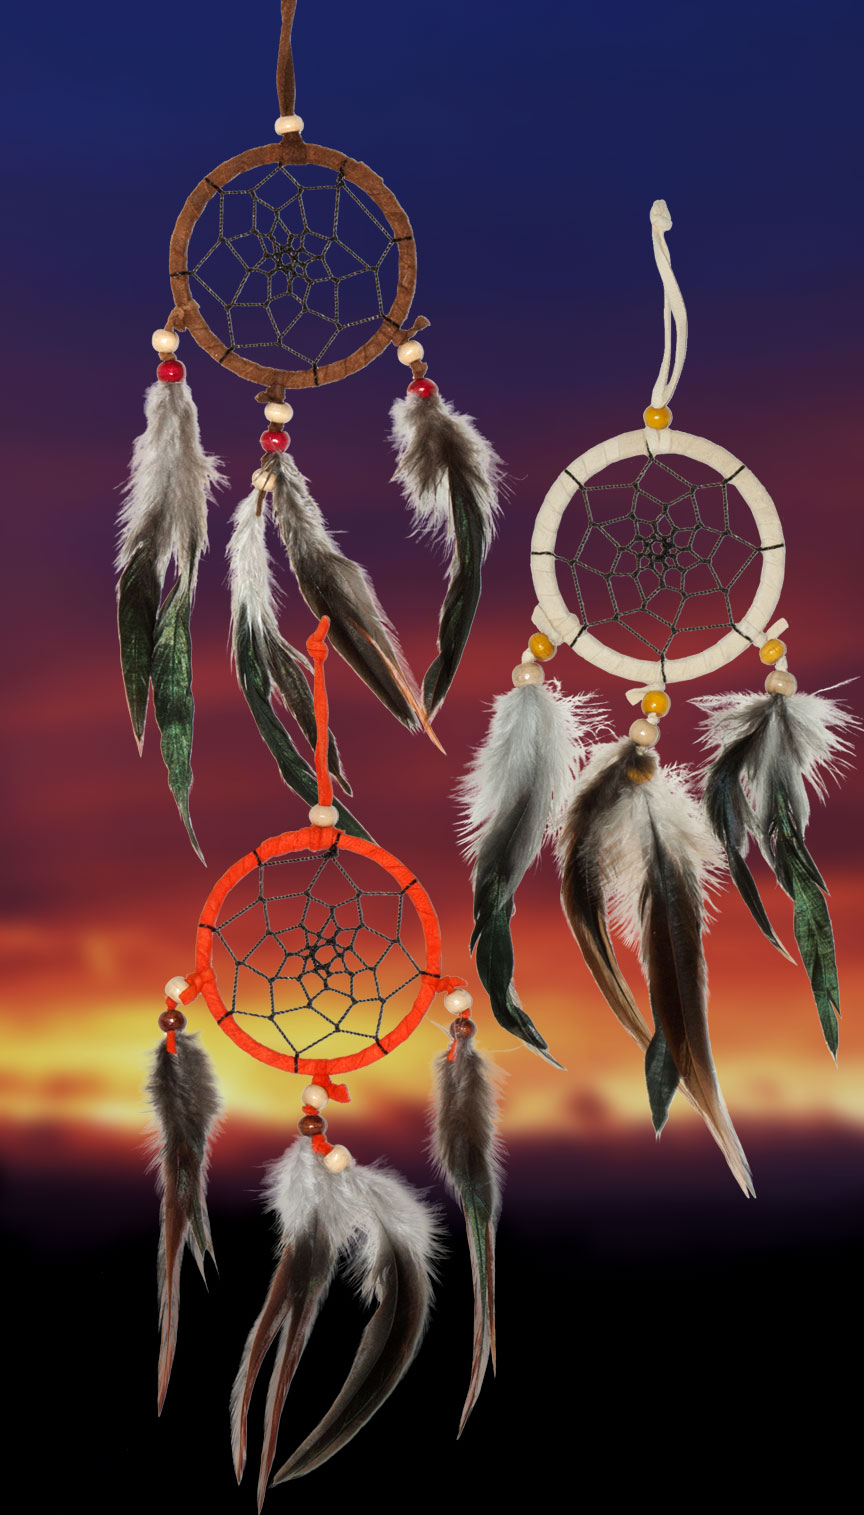 Shows an image of dreamcatchers owg014 on a scenic background